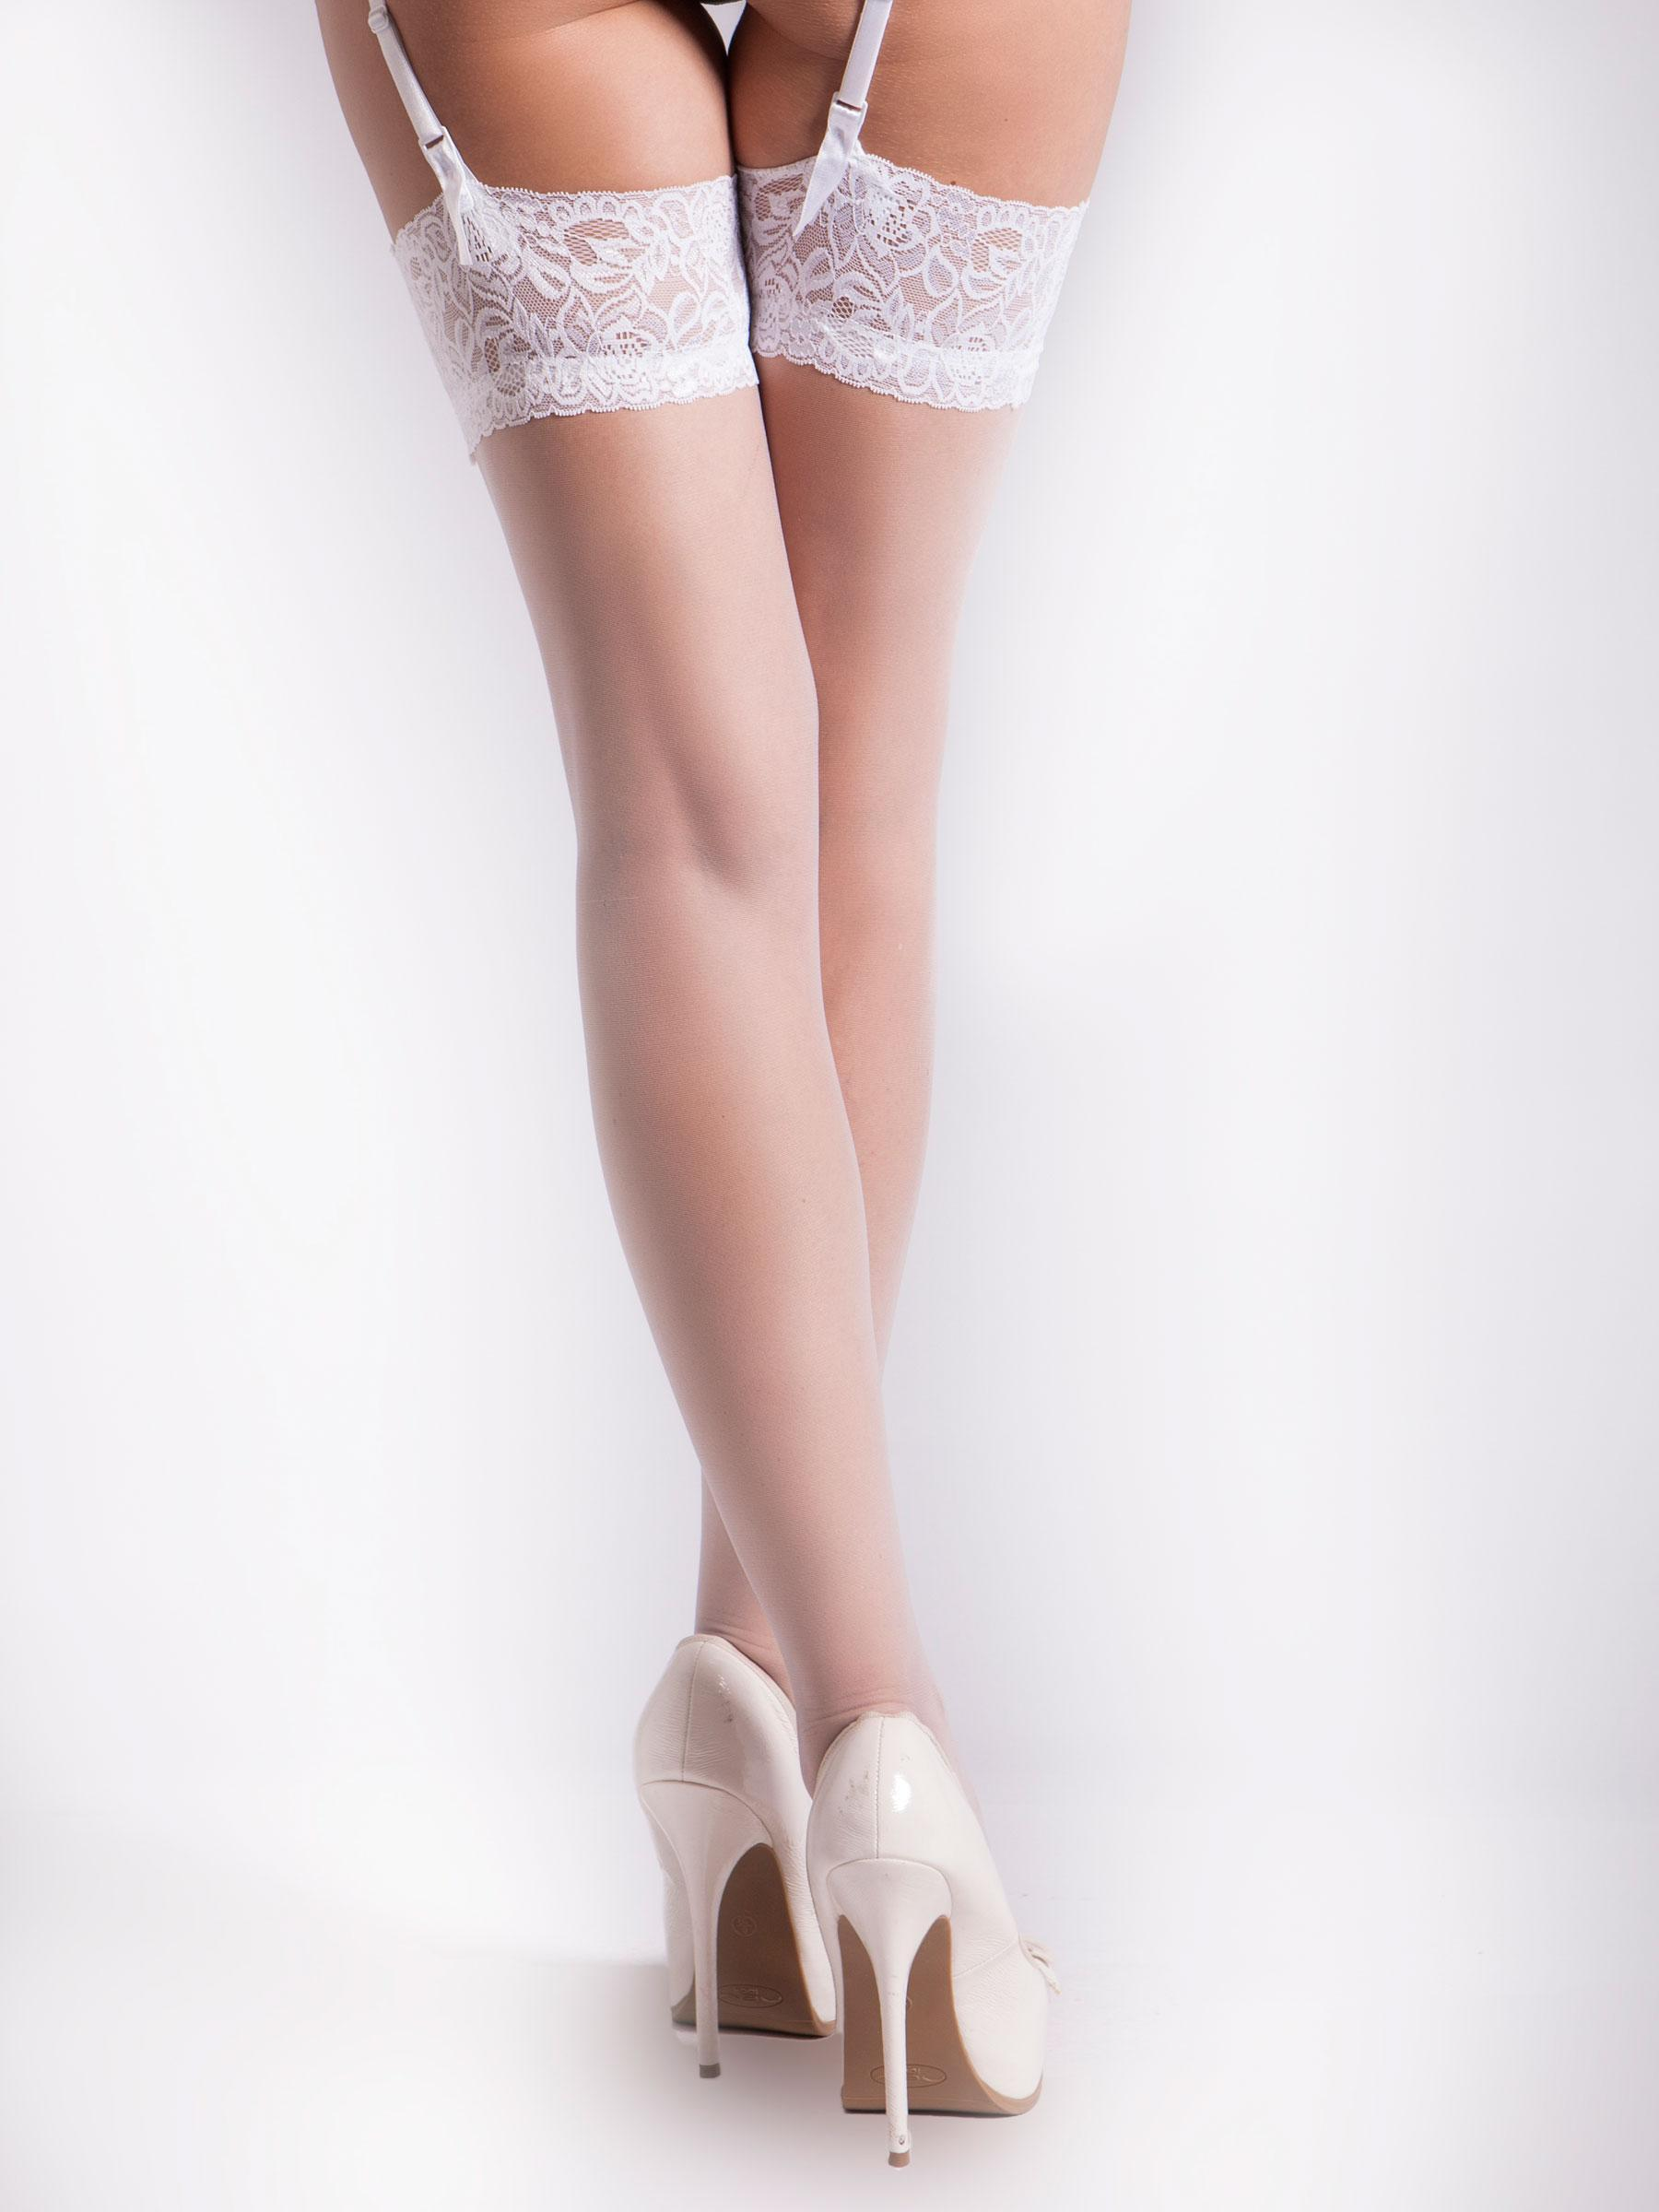 White stockings picture 14